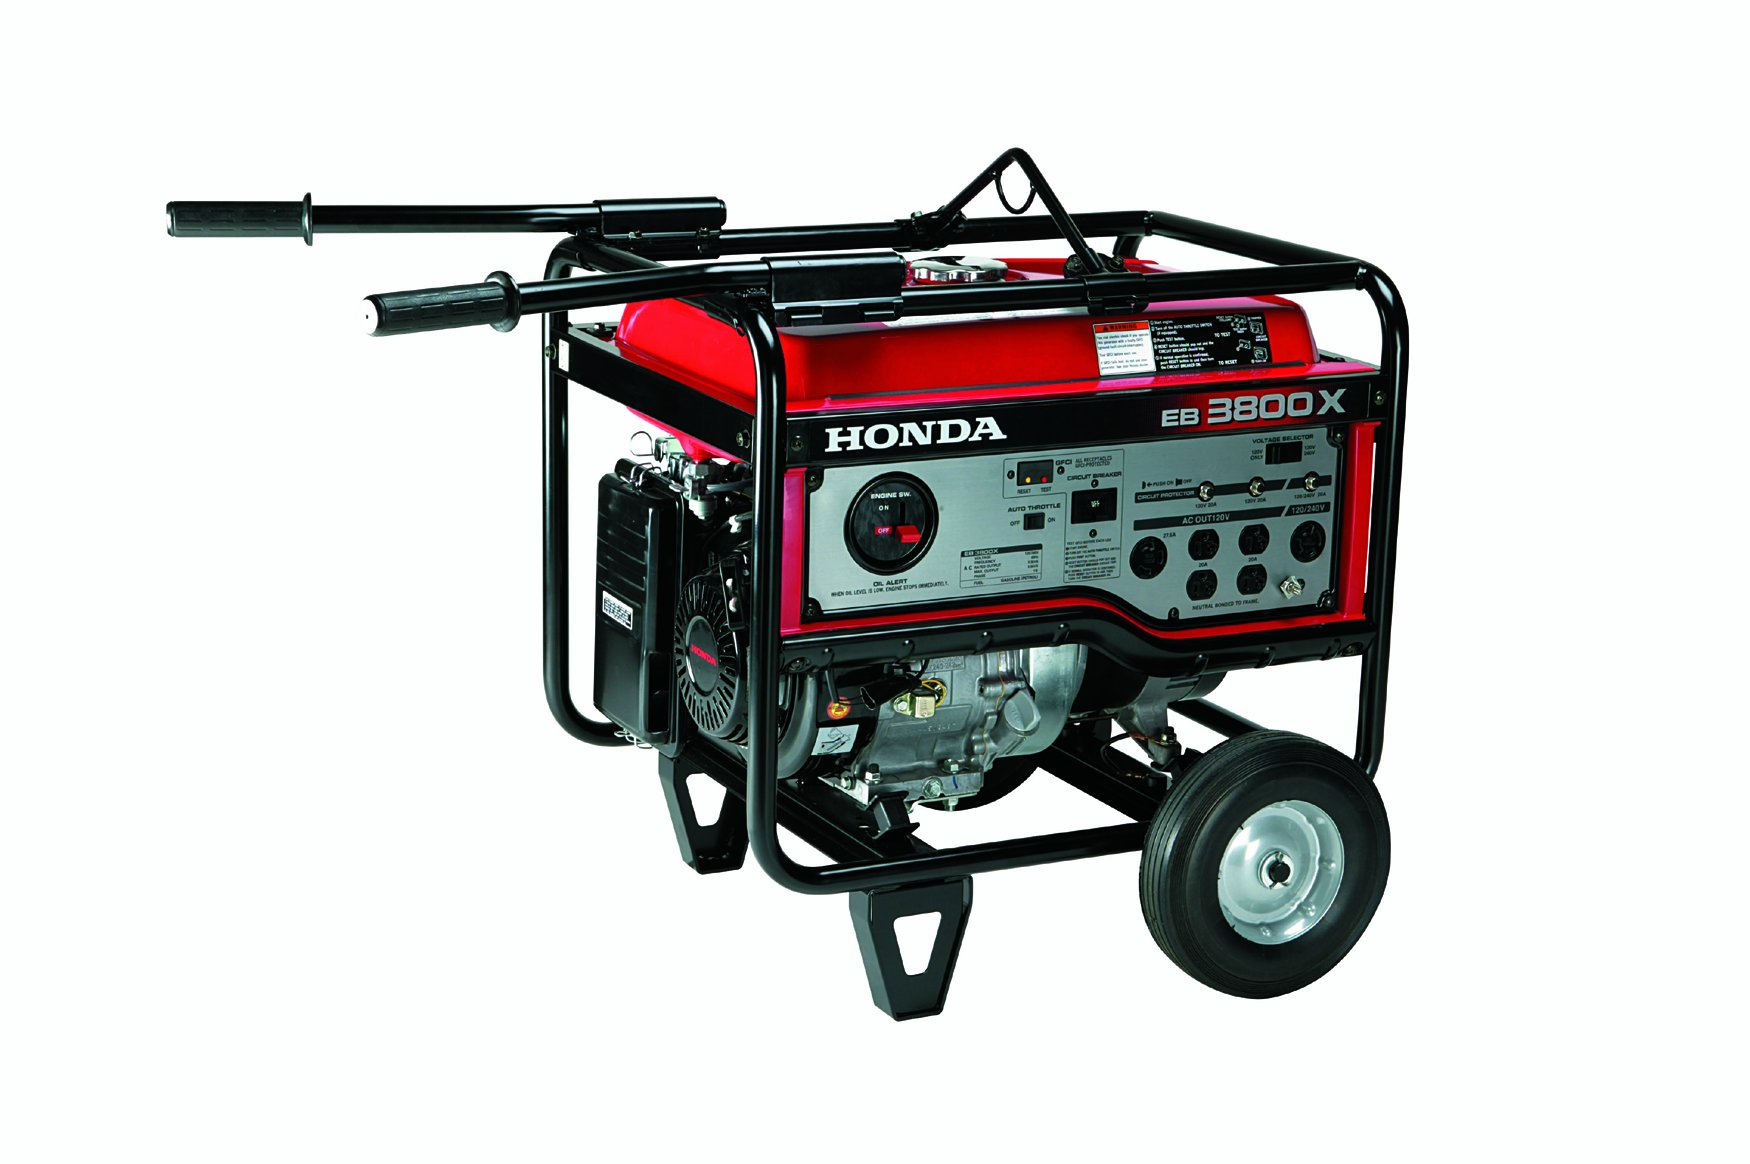 hight resolution of honda eb3800 generator